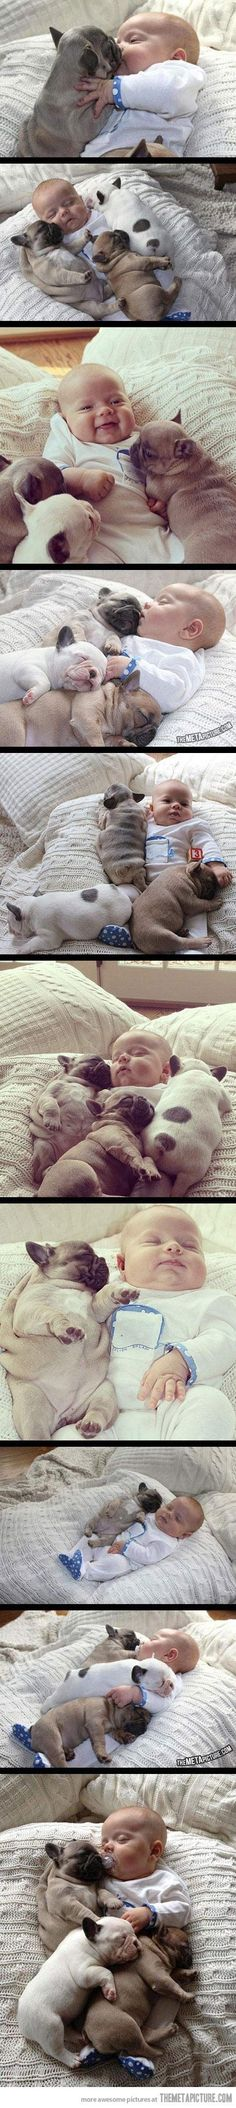 The cuteness is almost too much to handle!